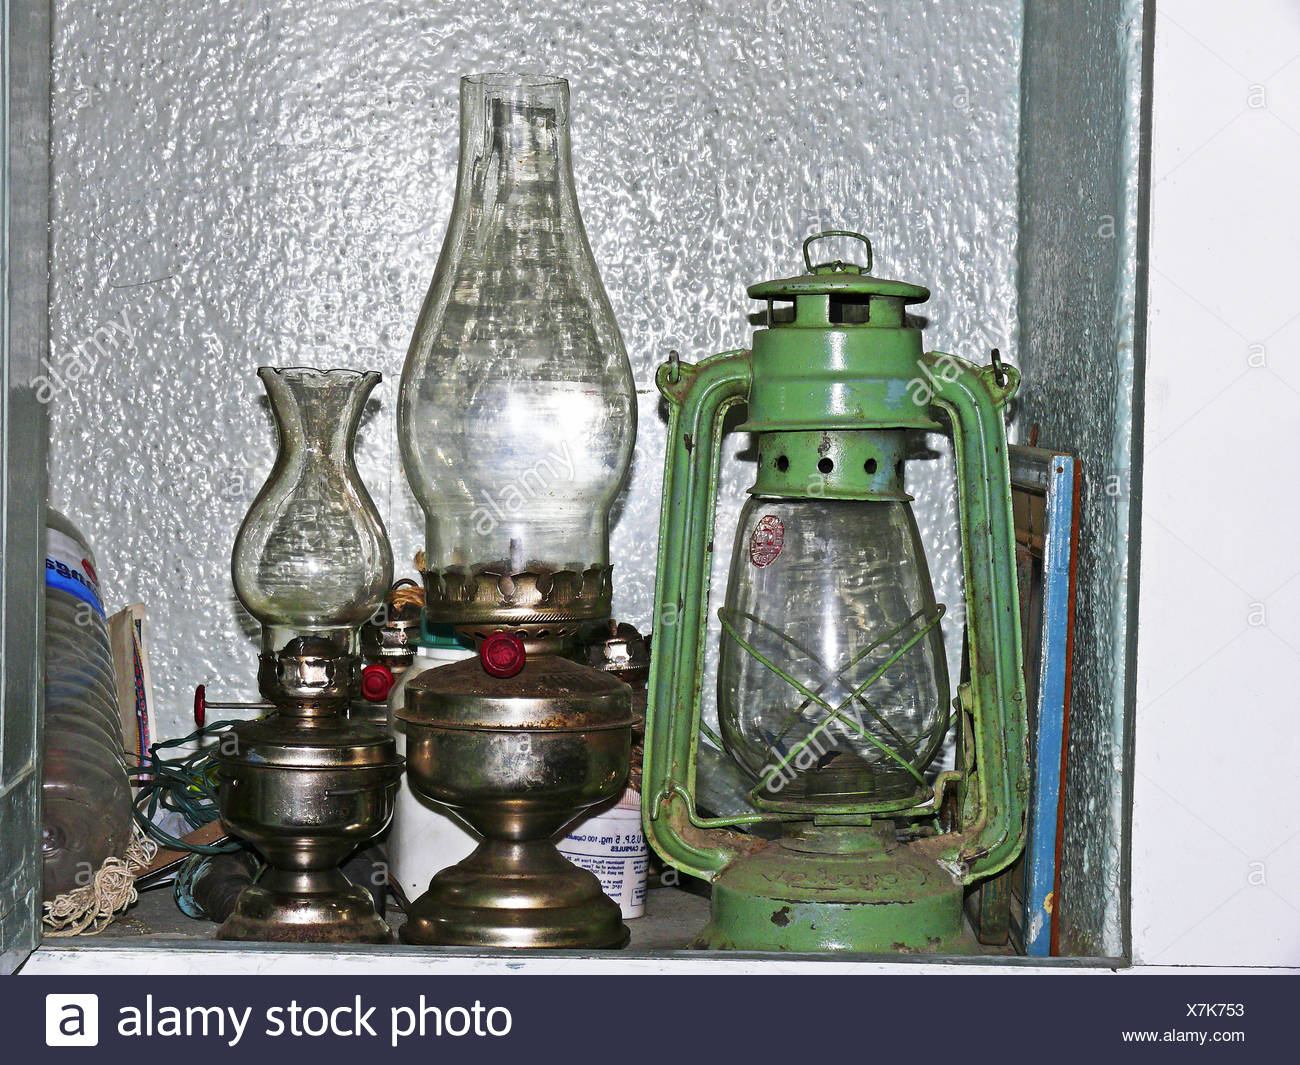 Modern Kerosene Lamp Kerosene Lamps Stock Photos Kerosene Lamps Stock Images Alamy